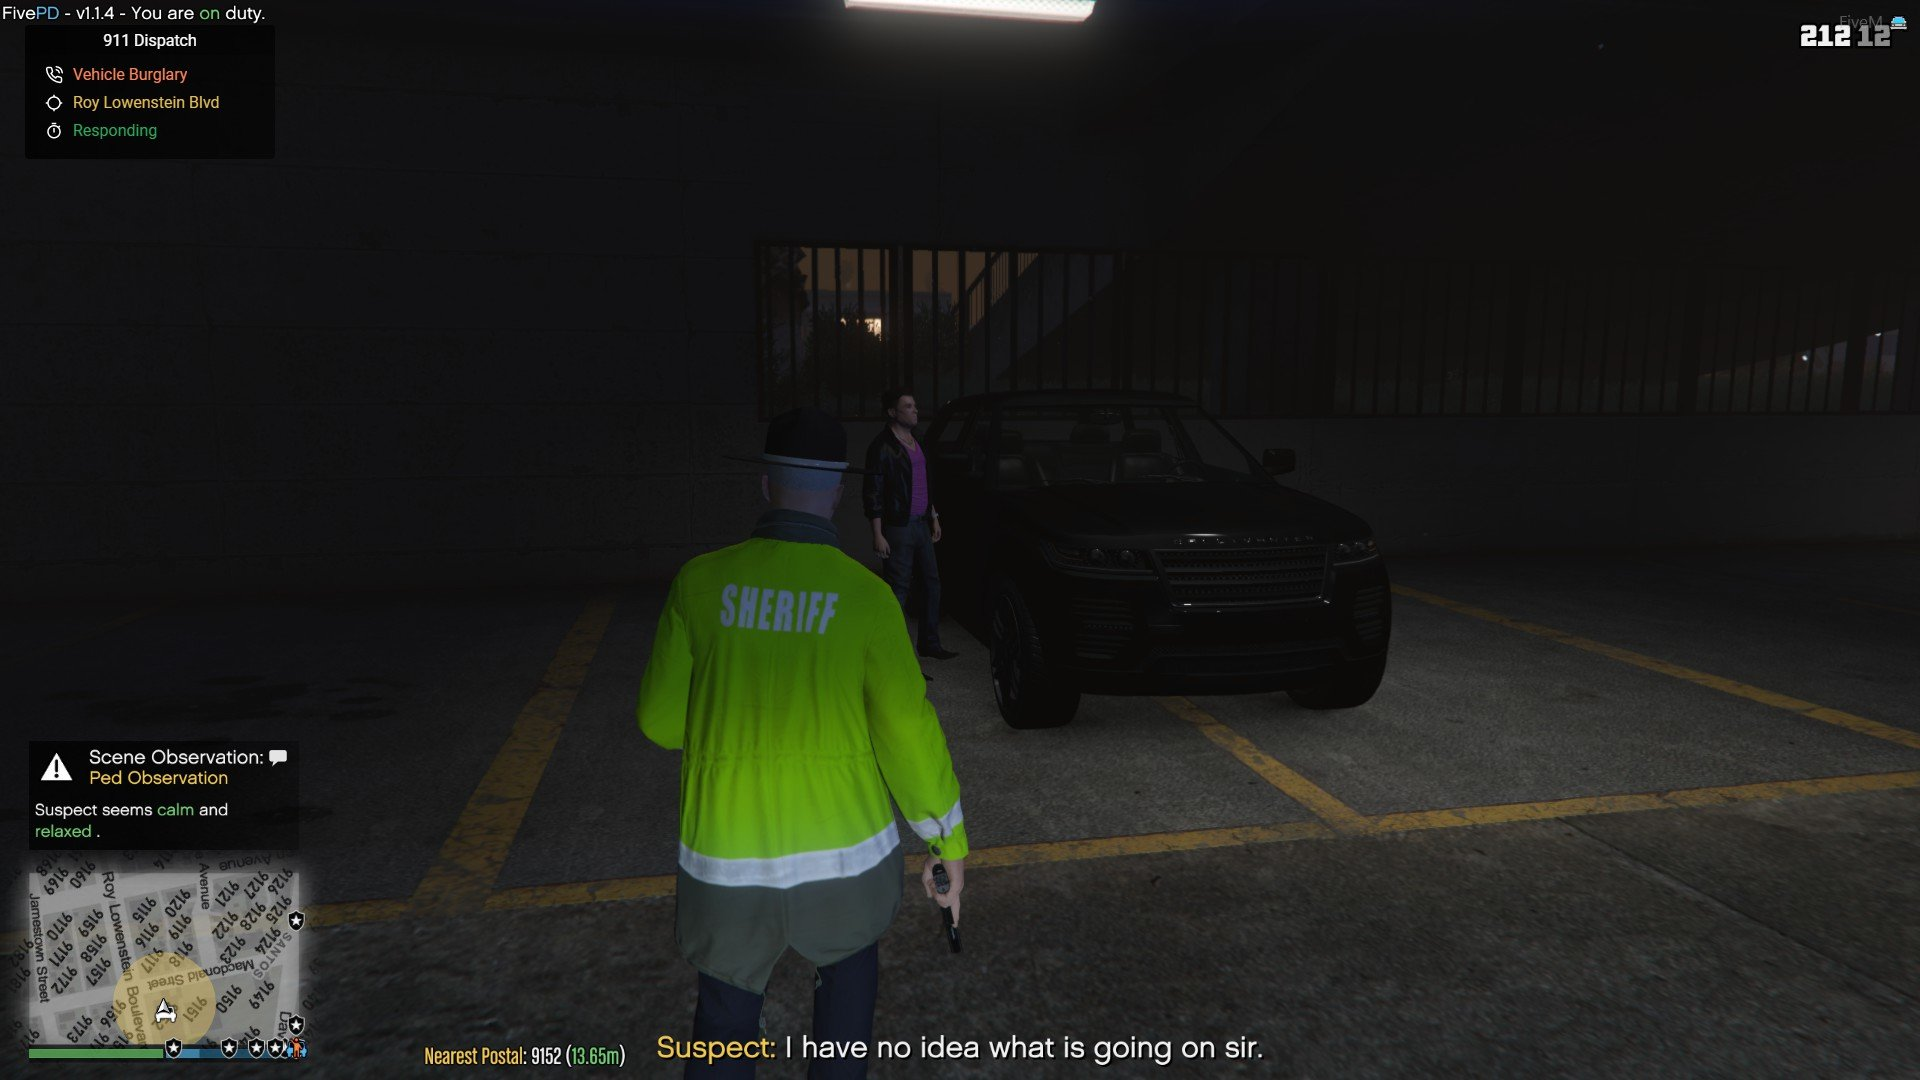 Is this your car sir?